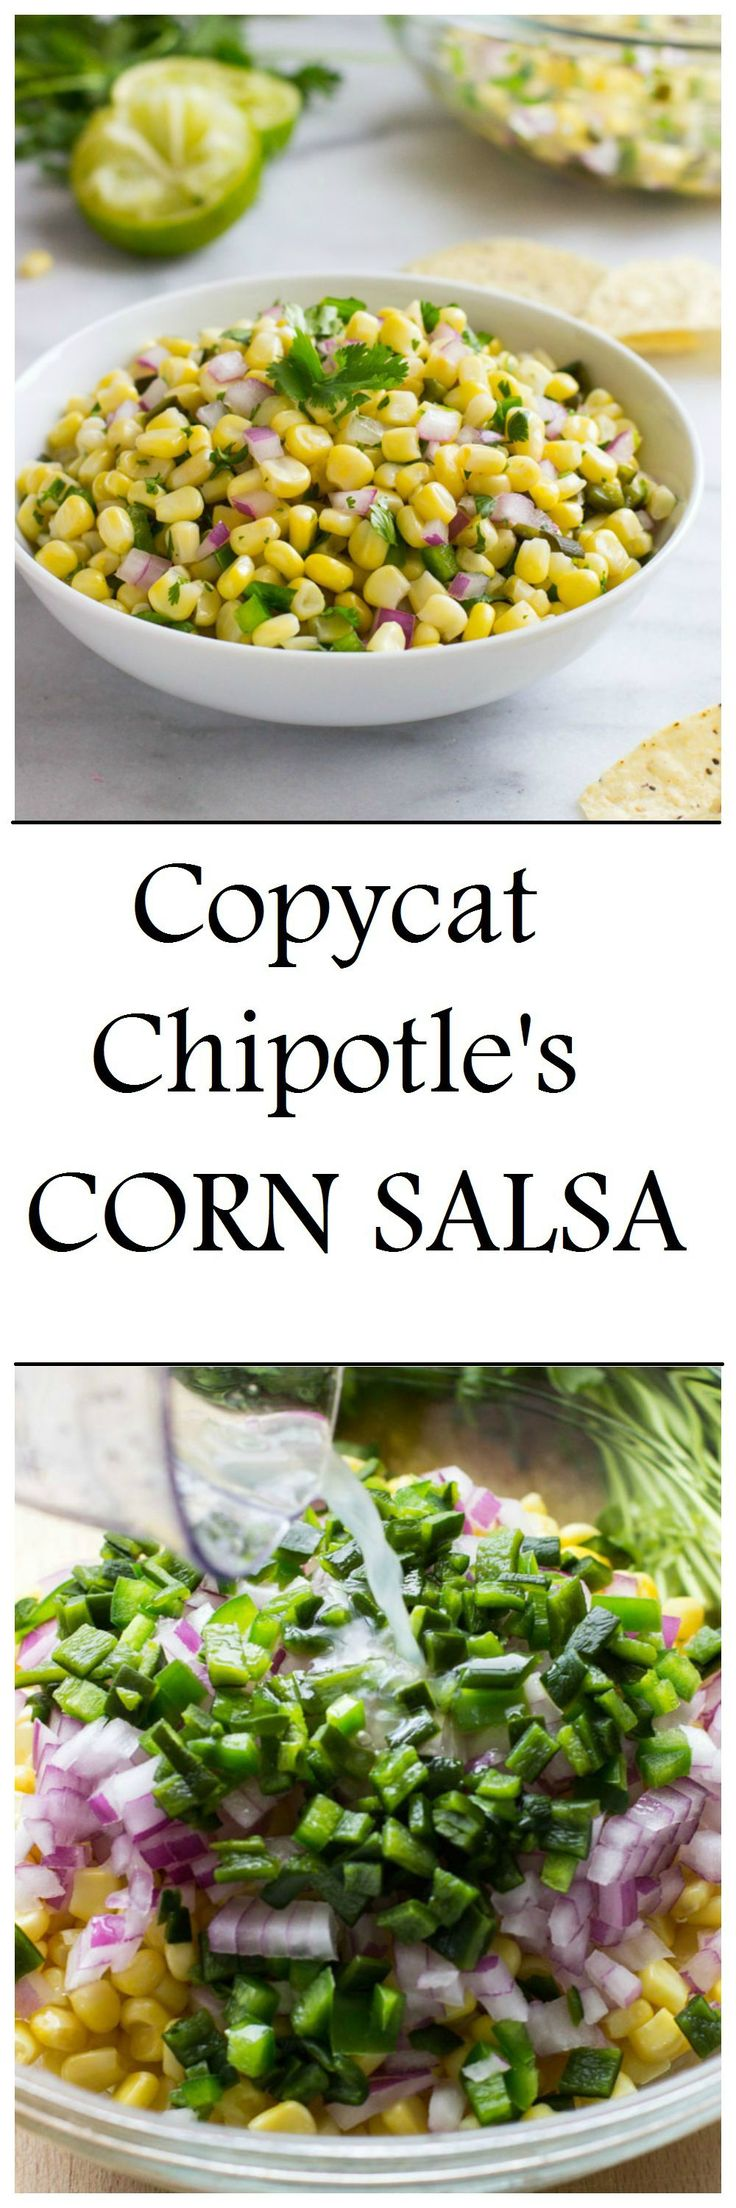 Copycat Chipotle's Corn Salsa- two key ingredients give this salsa it's irresistible flavor!                                                                                                                                                      More